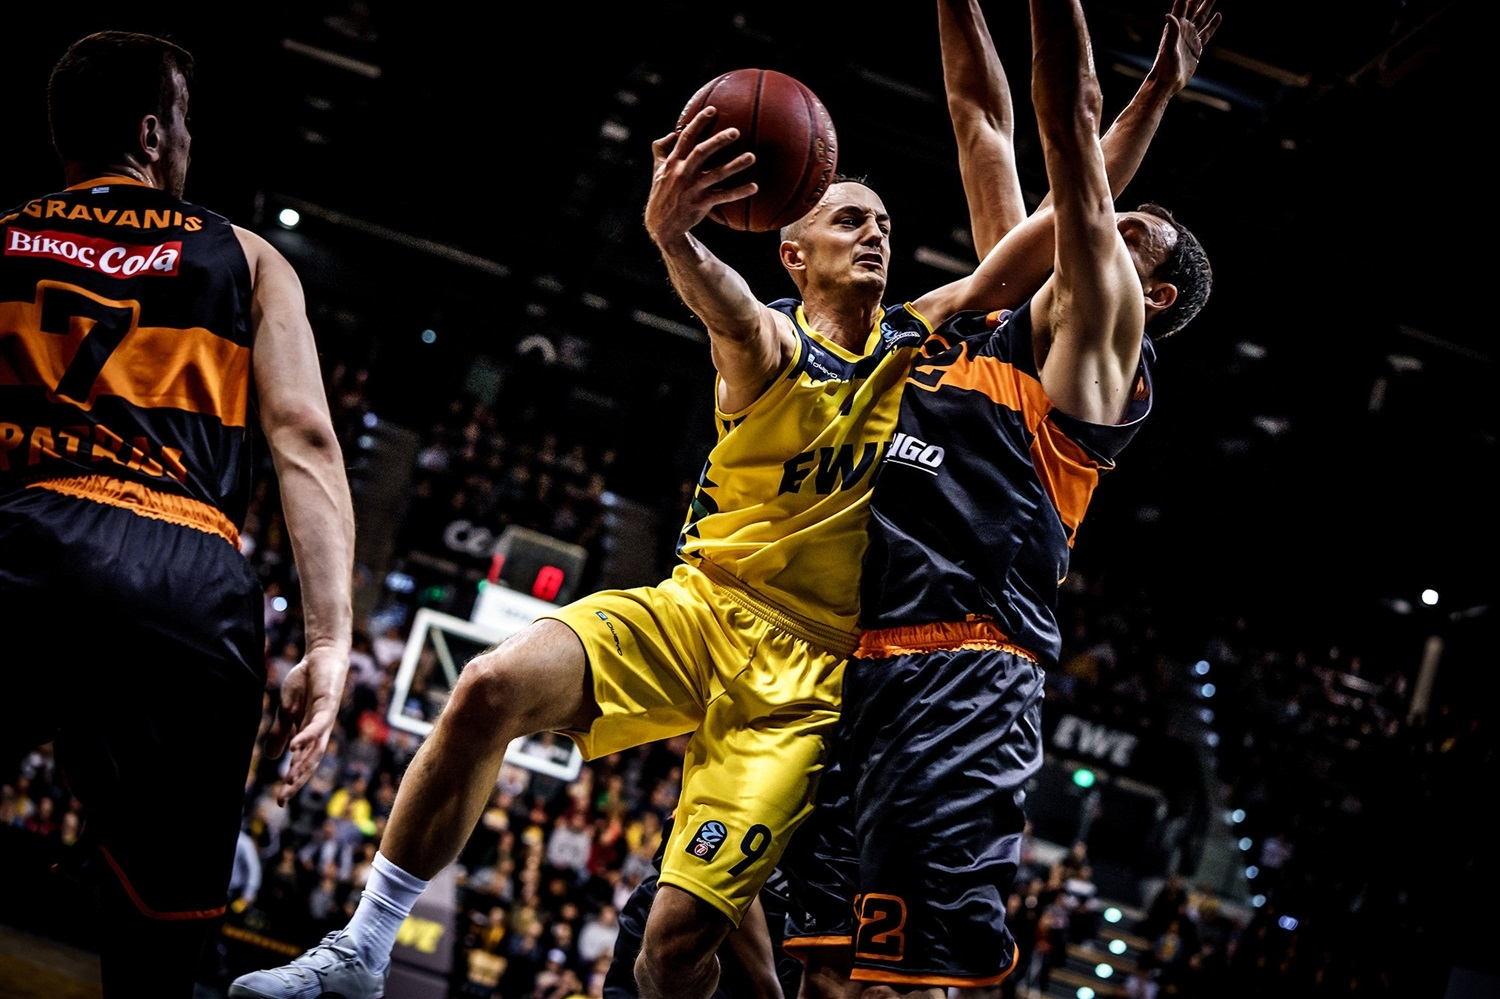 Karsten Tadda - EWE Baskets Oldenburg (photo Ulf Duda - fotoduda.de) - EC19